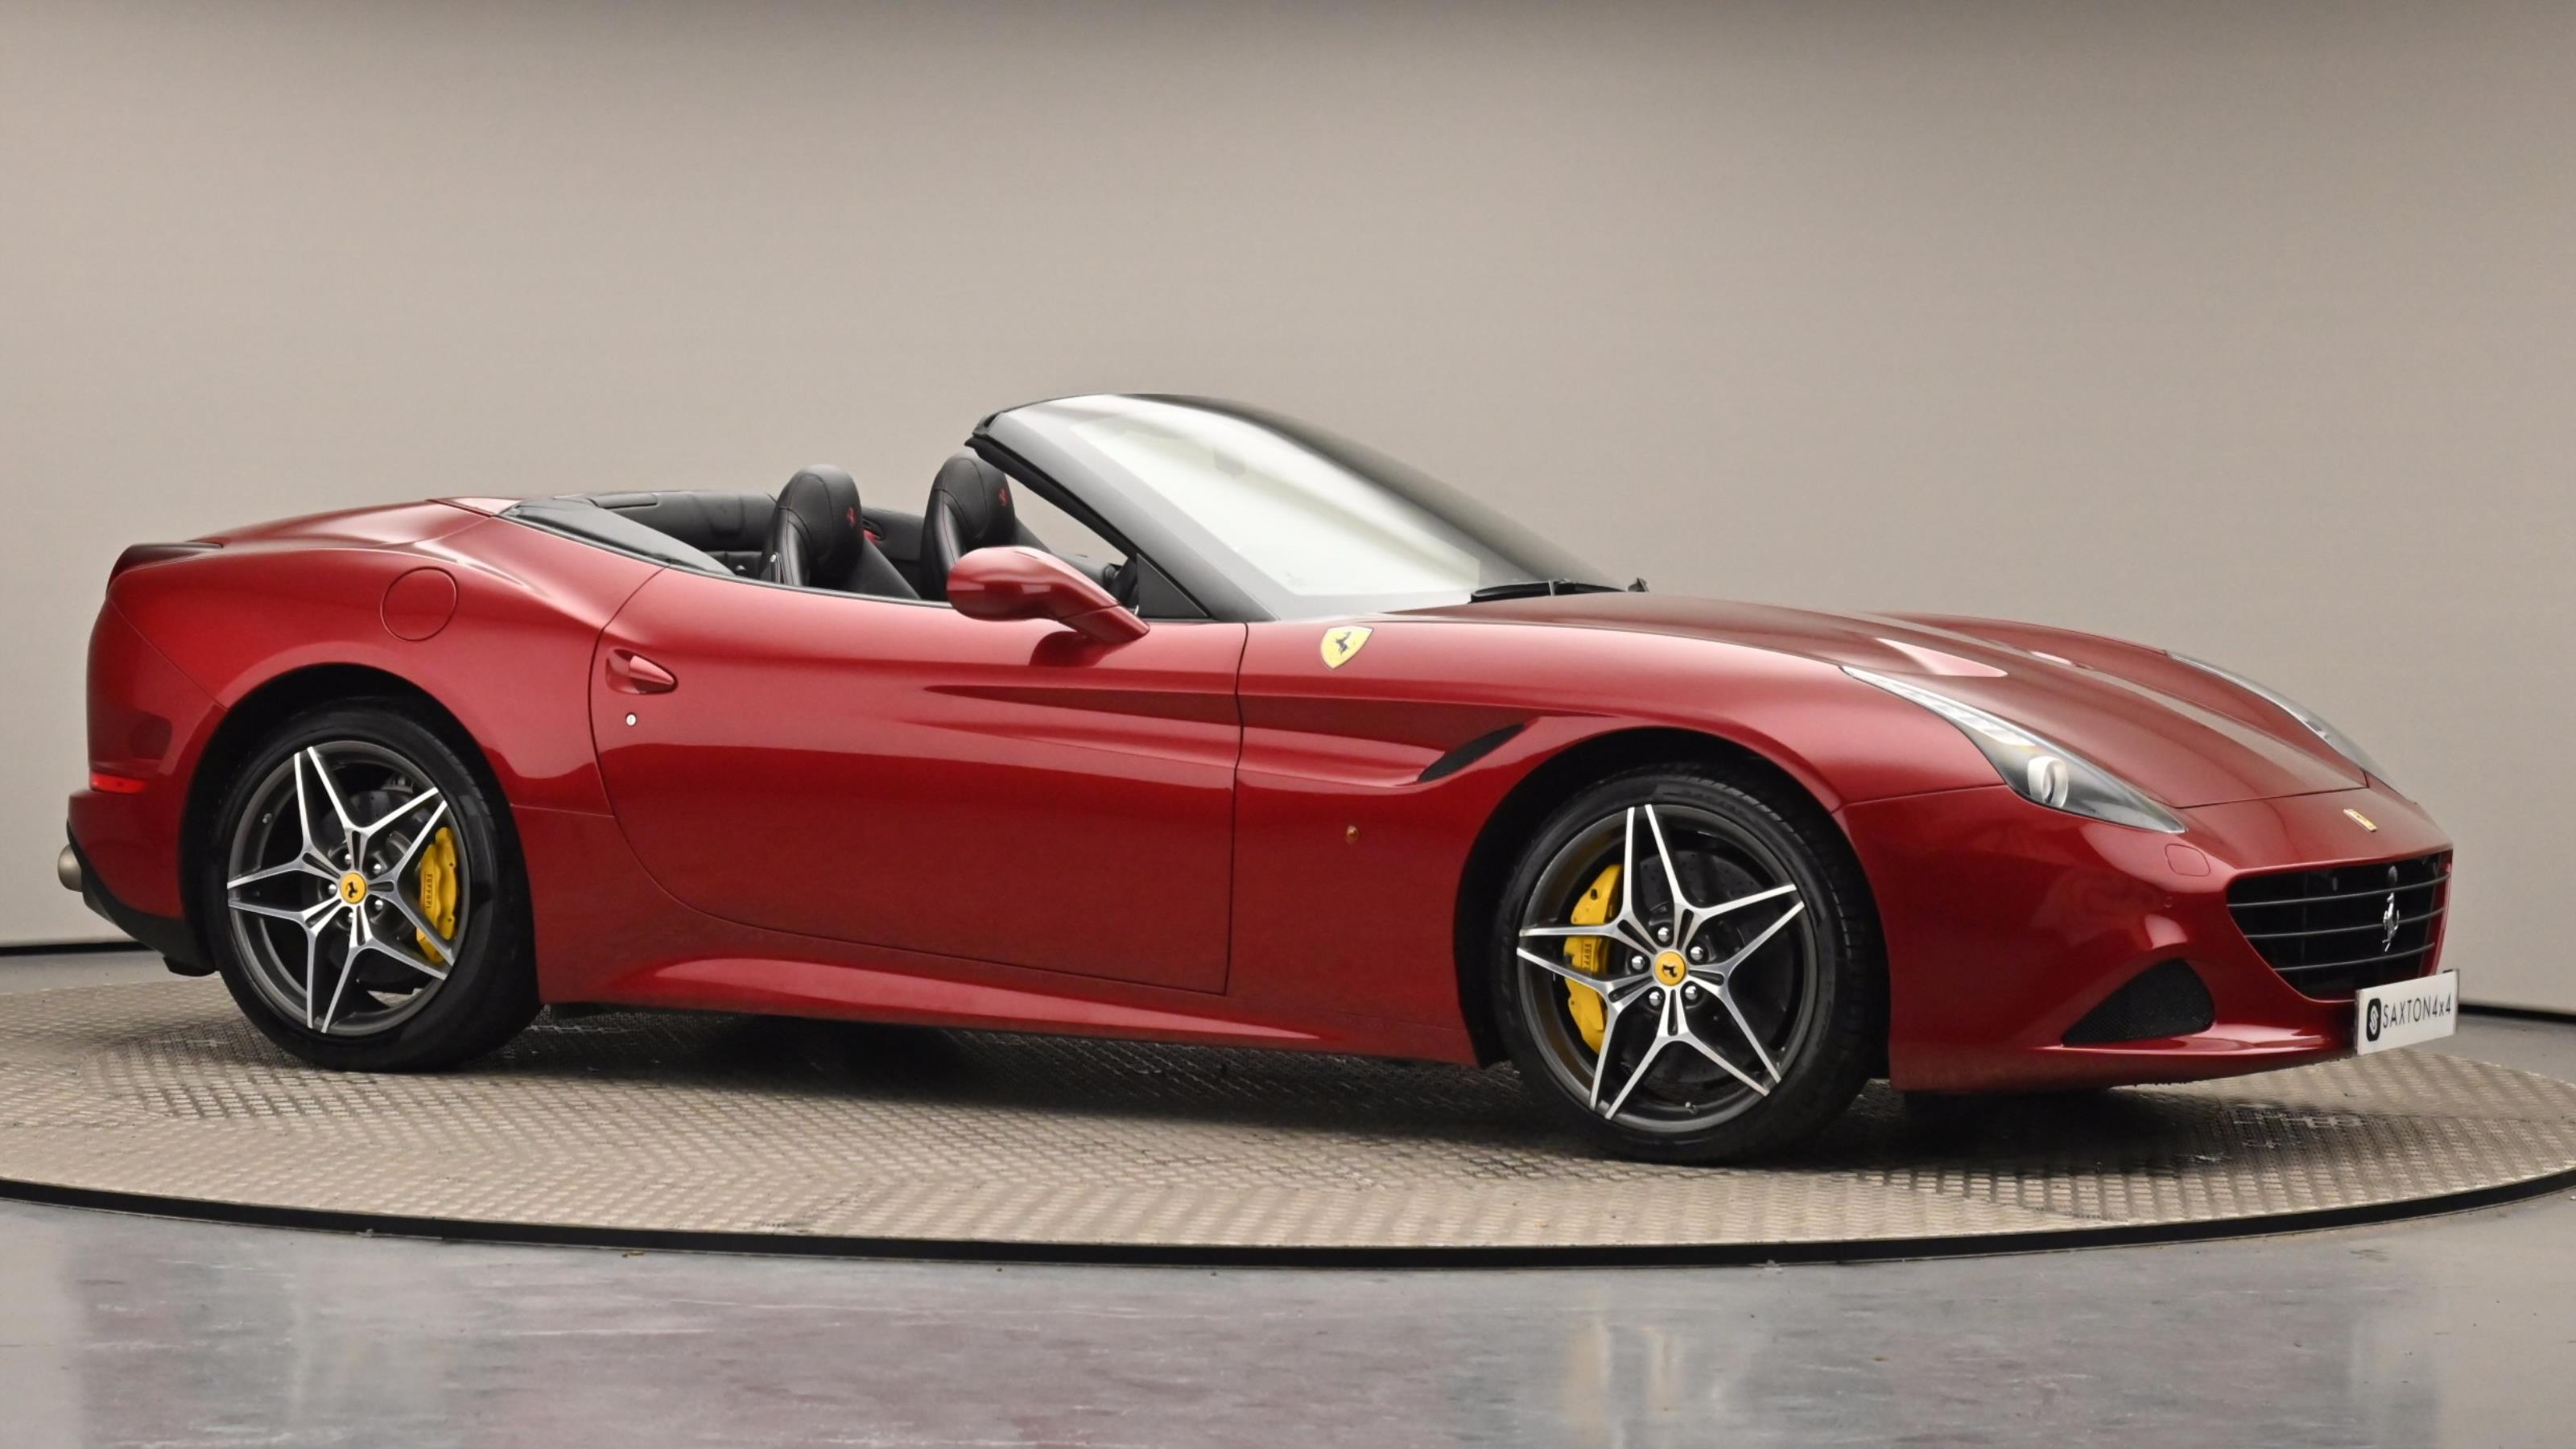 Used 2014 Ferrari CALIFORNIA T 2dr Auto RED at Saxton4x4